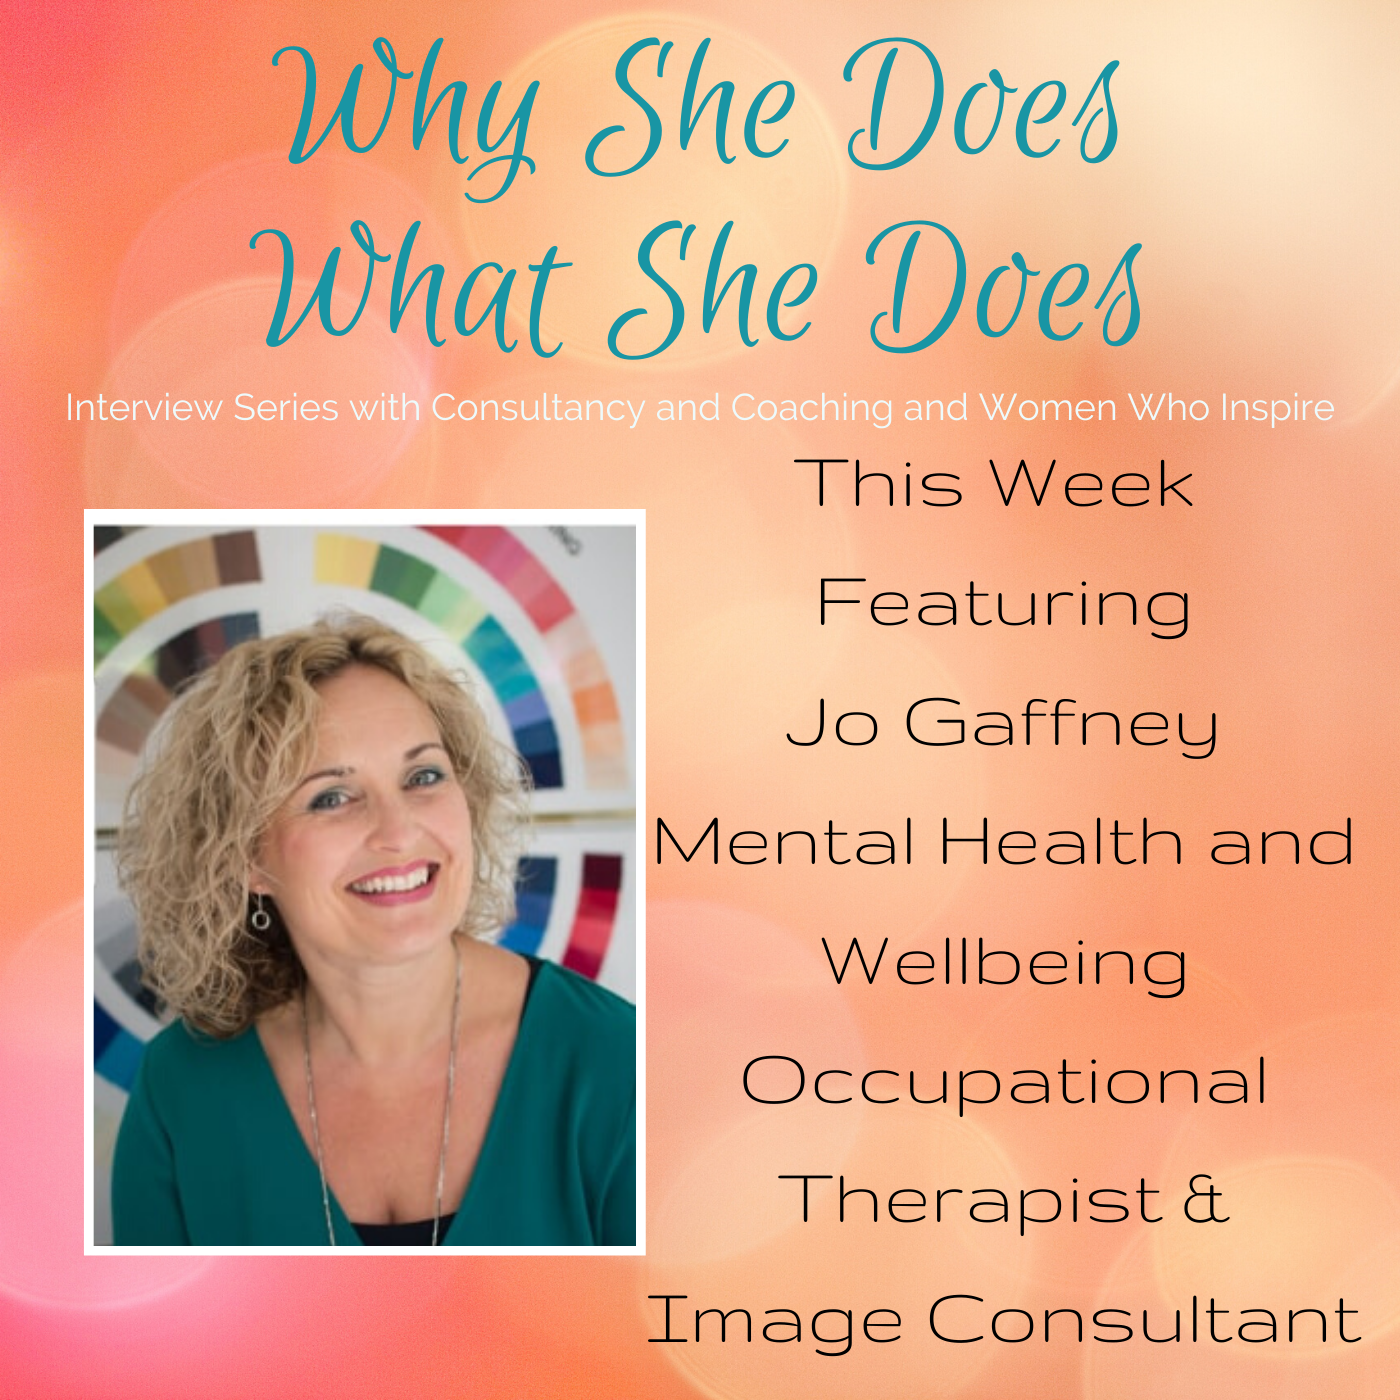 Jo Gaffney Why She Does What She Does, Interview with Carol Evans, Consultancy and Coaching